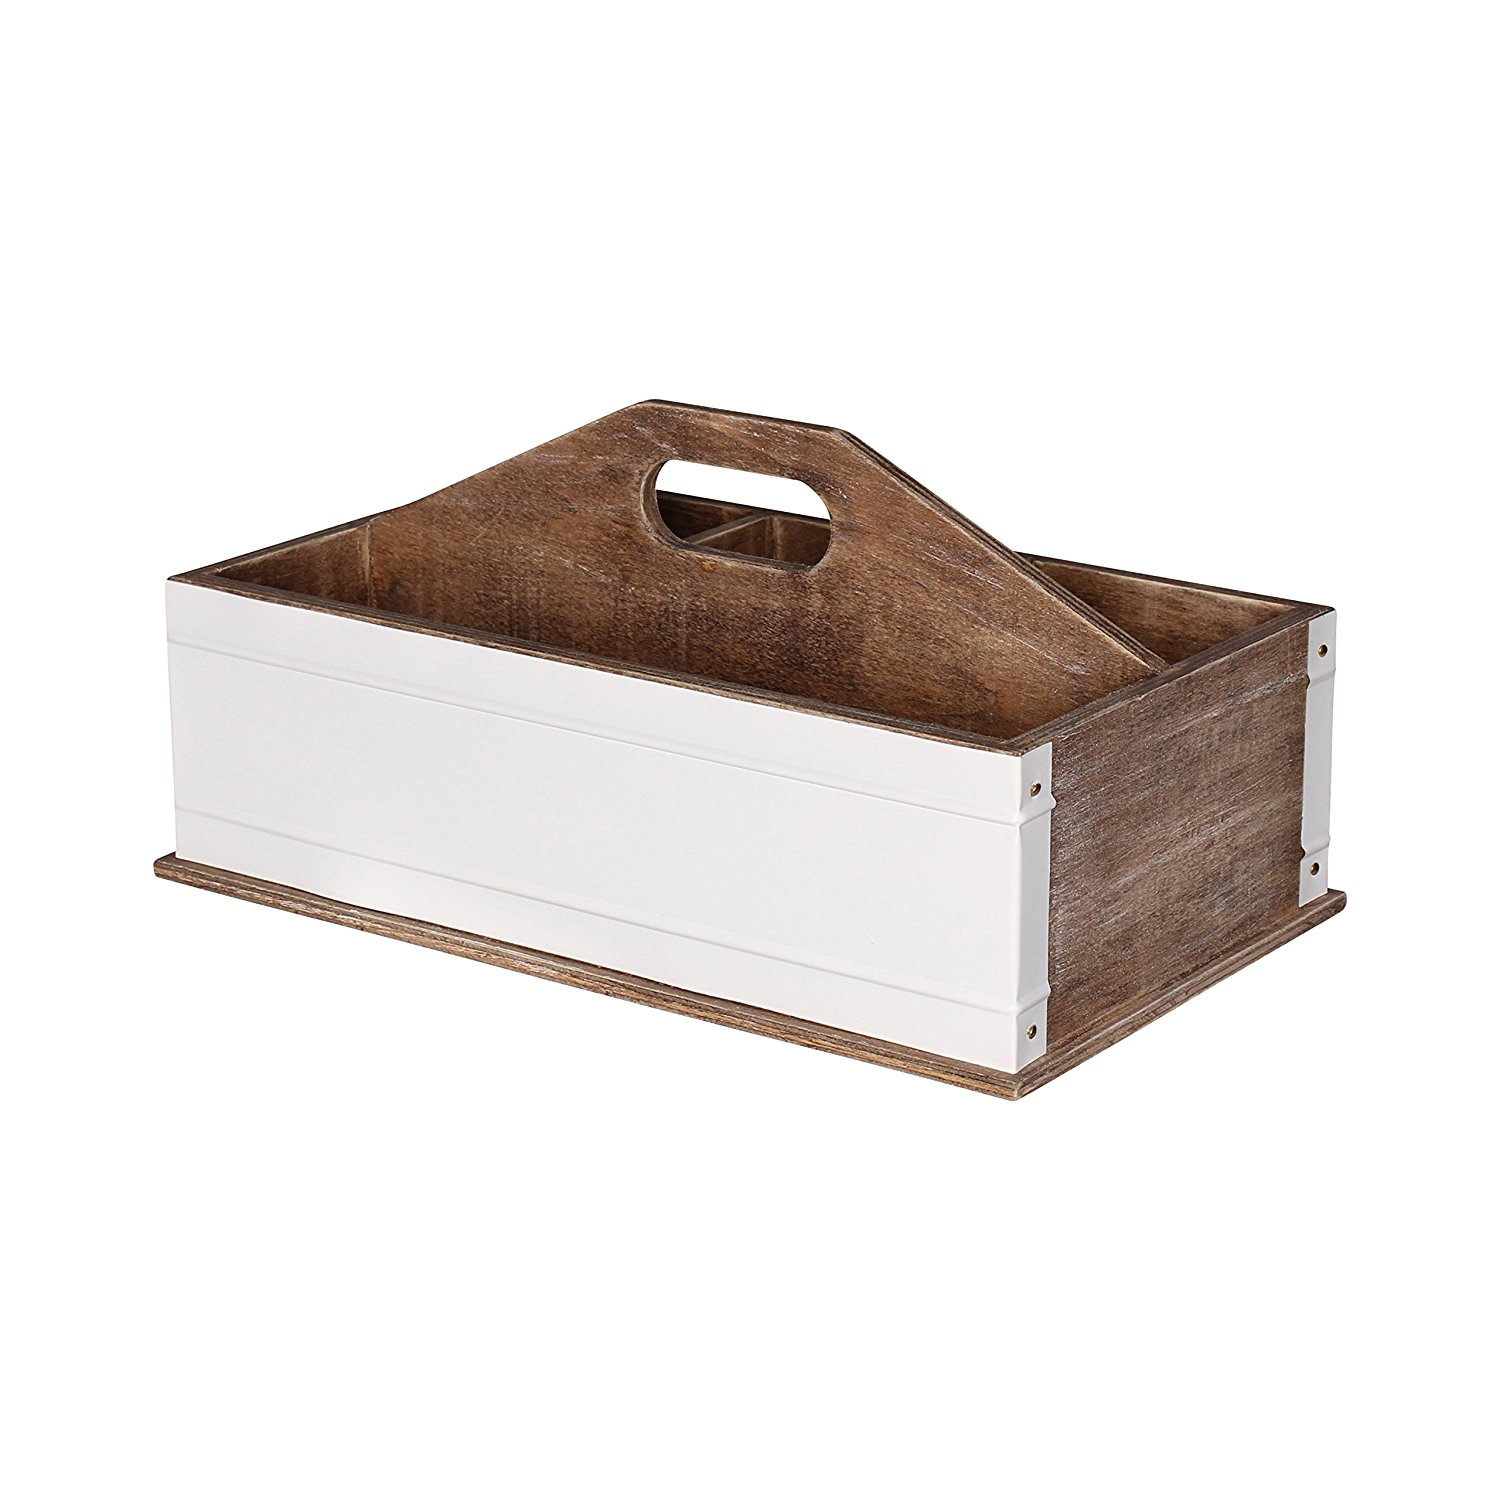 Get Quotations Kate And Laurel Industrious Desktop Office Supply Caddy Organizer Rustic Wood White